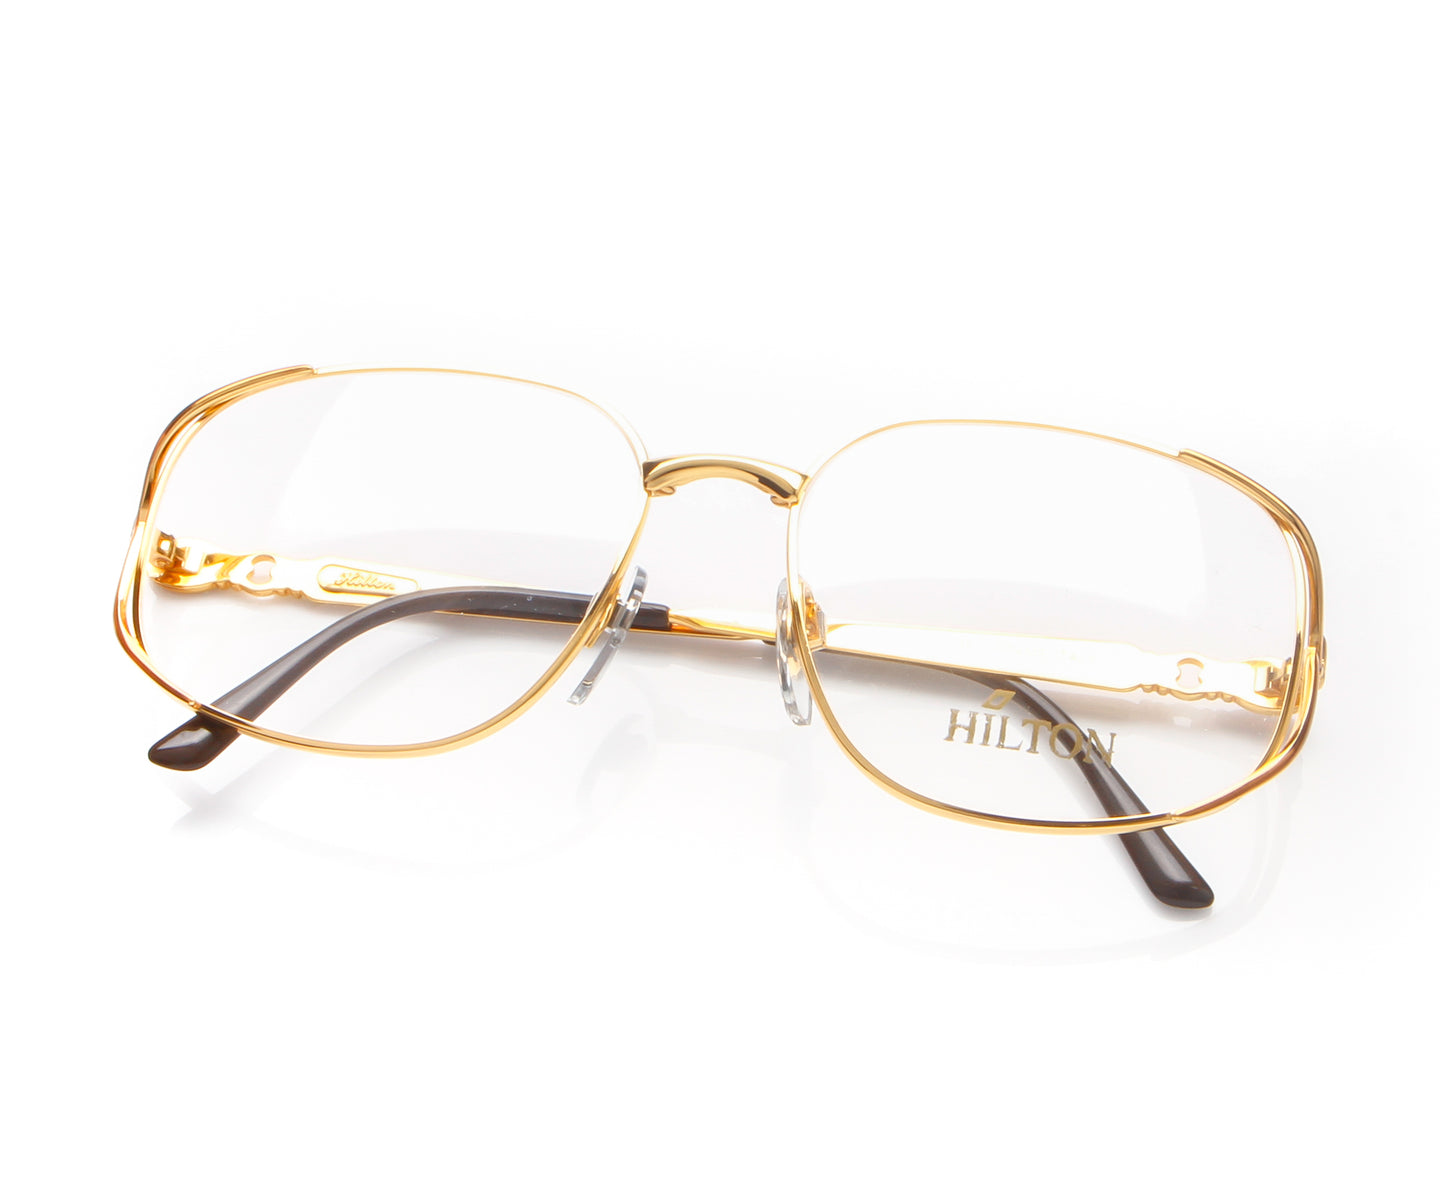 Vintage Hilton Lady Hilton 815 98D E7F 24KT, Hilton , glasses frames, eyeglasses online, eyeglass frames, mens glasses, womens glasses, buy glasses online, designer eyeglasses, vintage sunglasses, retro sunglasses, vintage glasses, sunglass, eyeglass, glasses, lens, vintage frames company, vf